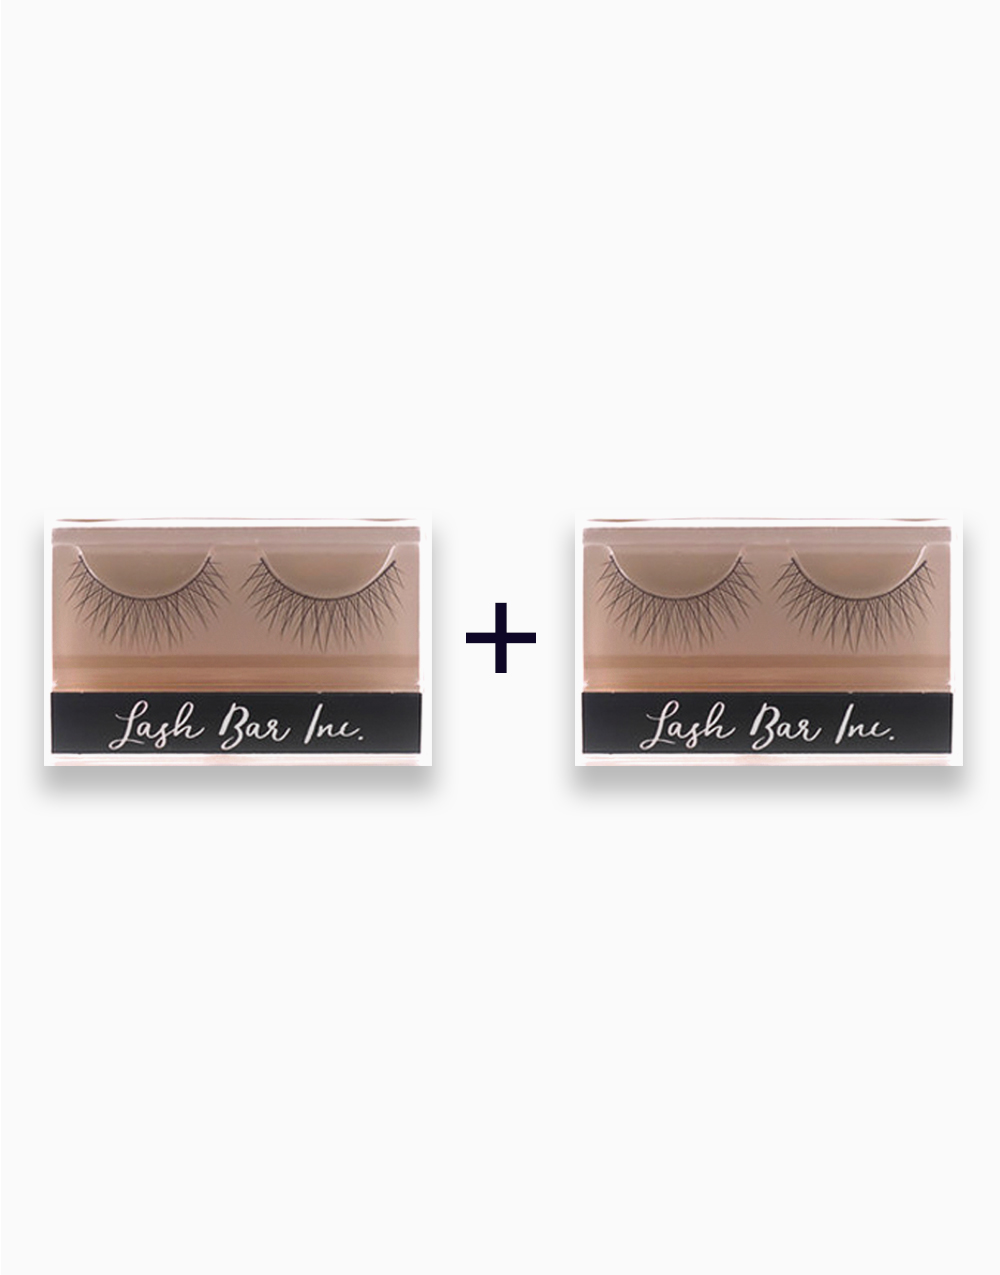 Bella Lashes (Buy 1, Take 1) by Lash Bar Inc.